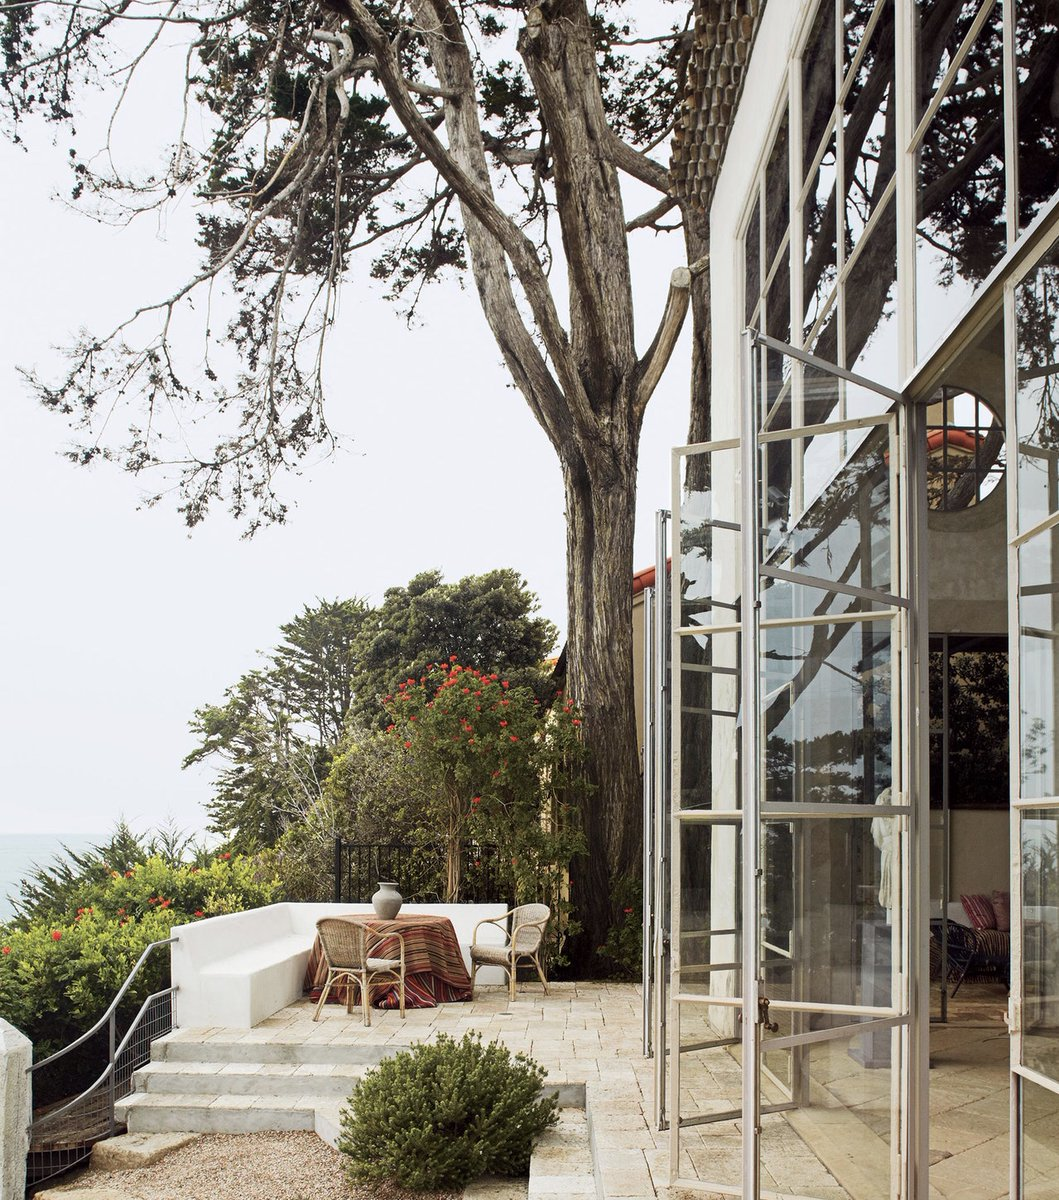 Meticulously crafted steel windows open to an ocean outlook in Richard Shapiro's Malibu beachfront residence 🌊  #LA #bjornfarrugiarealestate #hiltonhyland #luxuryhomes #milliondollarlisting #residential #realestateagent #zillow #luxuryrealestate #architecture #views #l4l